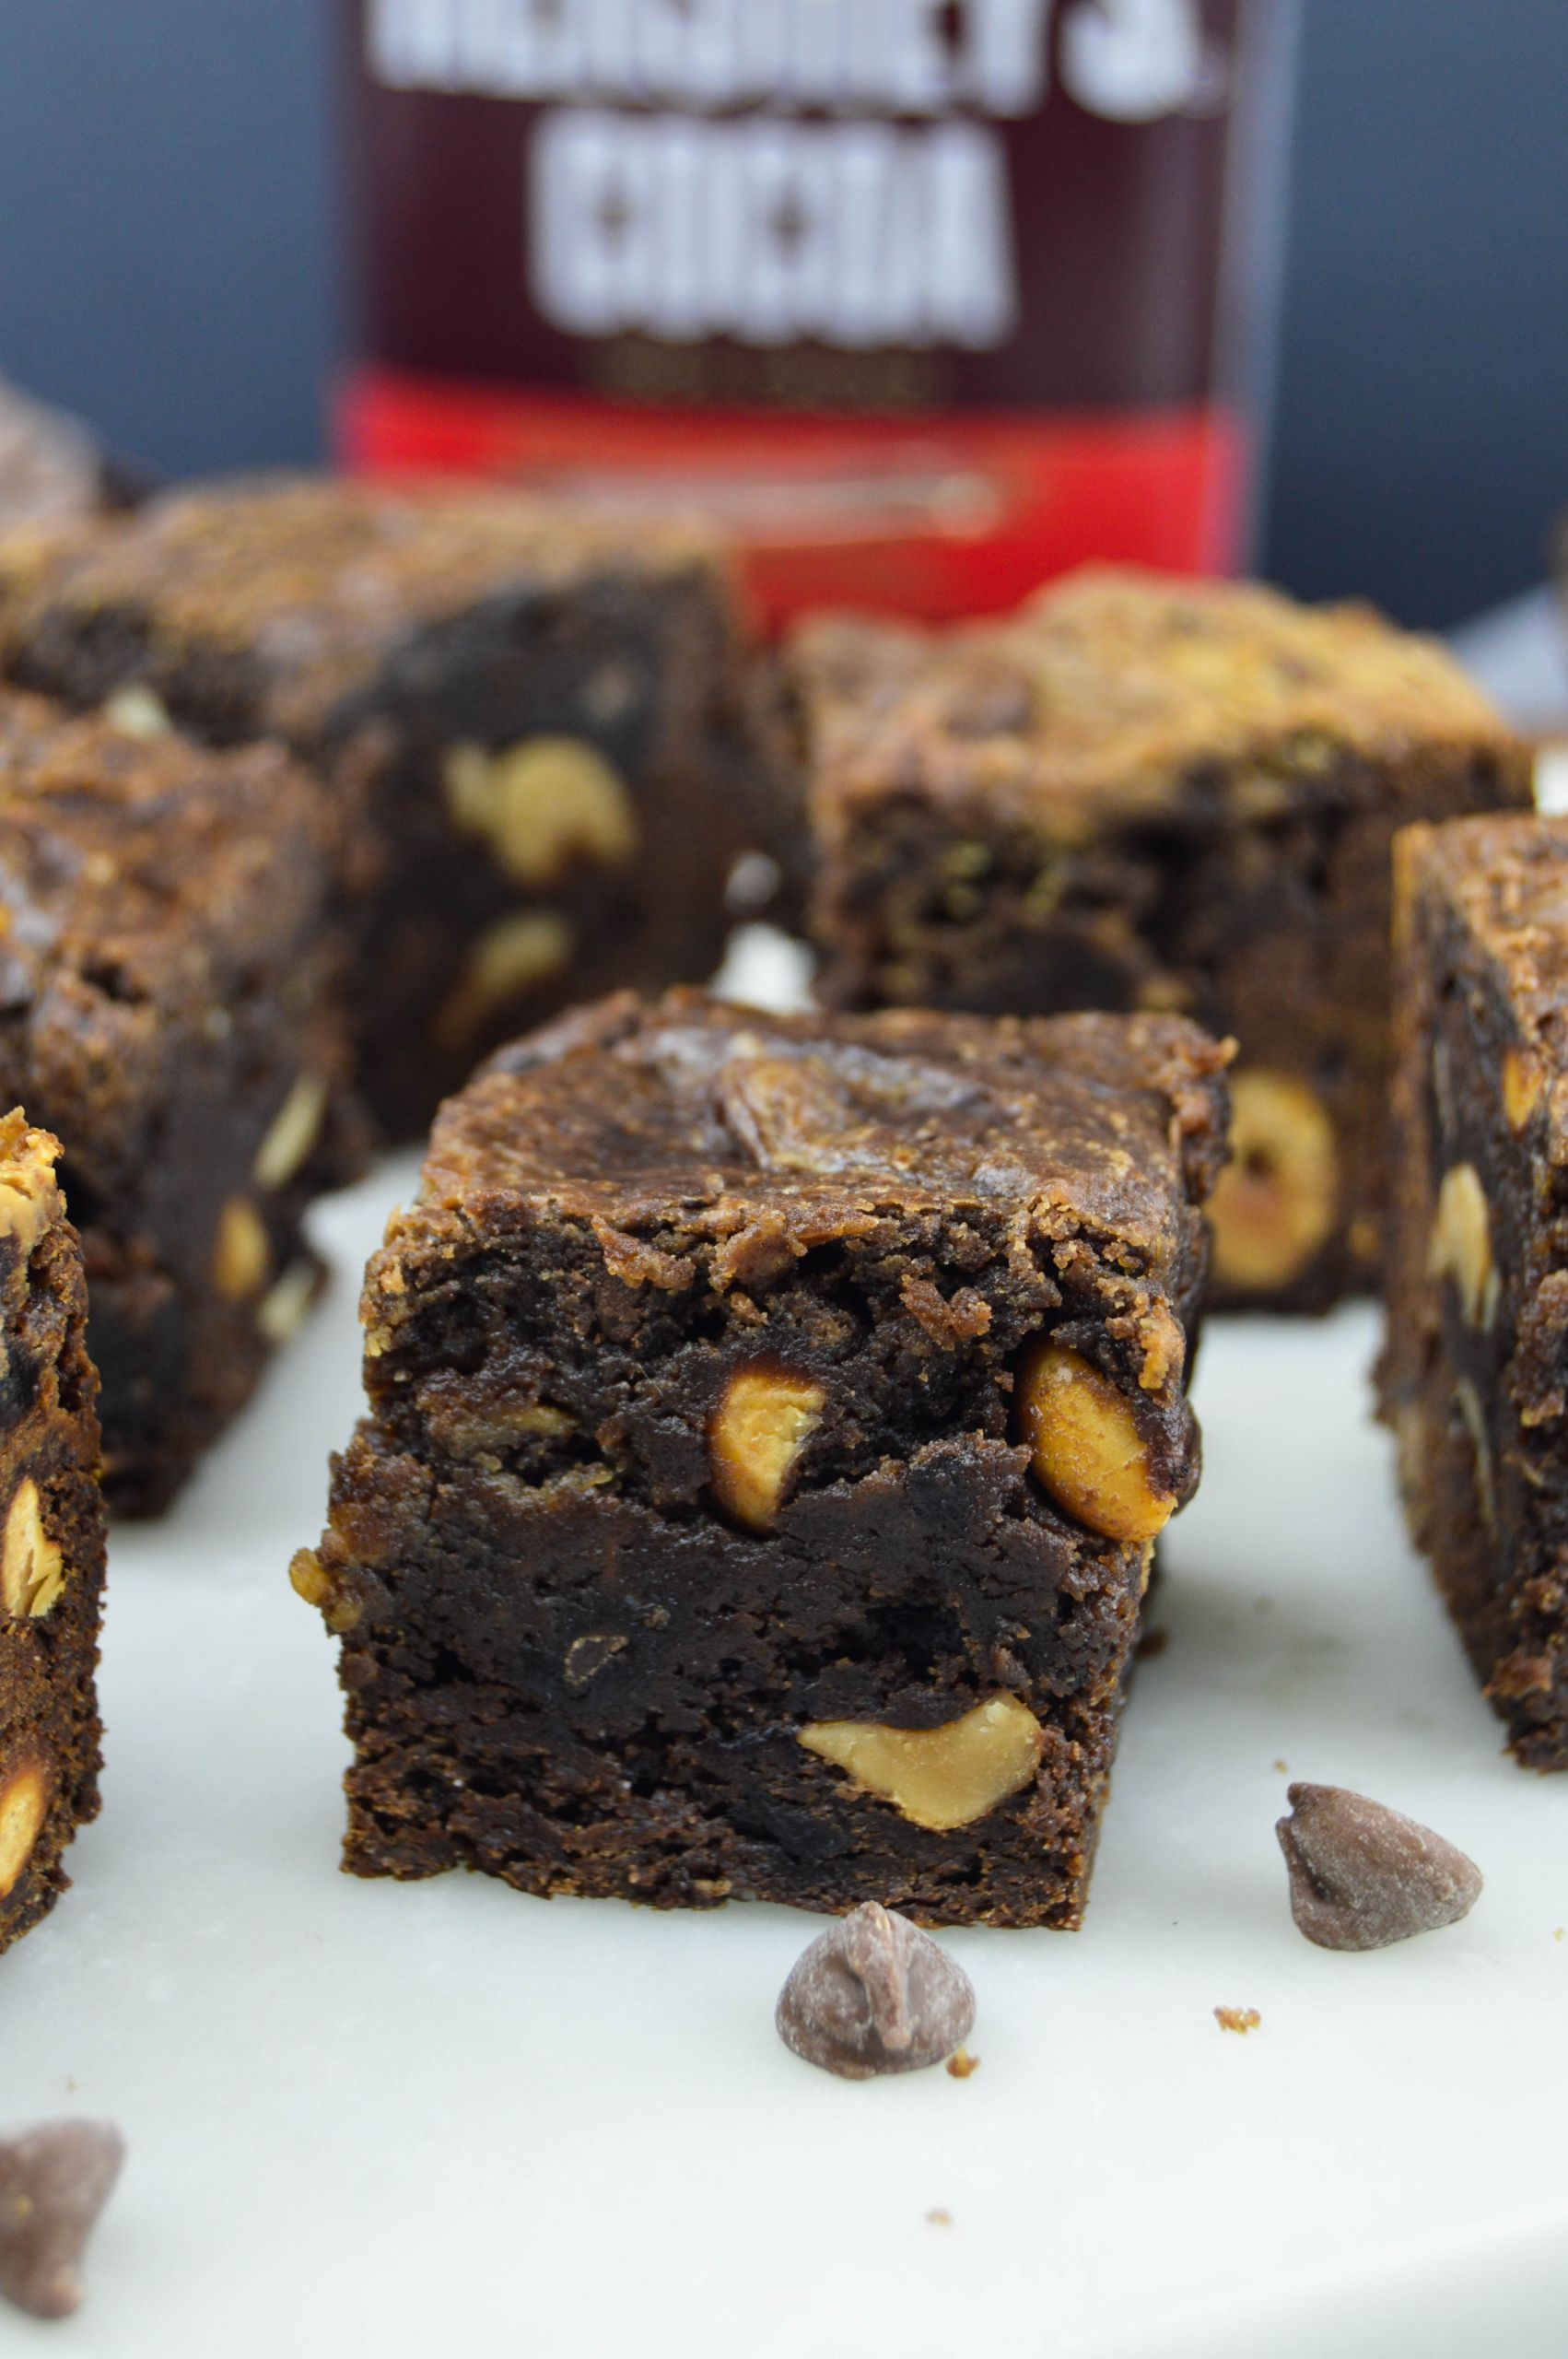 Slow Cooker Brownies  Slow Cooker Peanut Butter Chocolate Brownies RecipeChatter